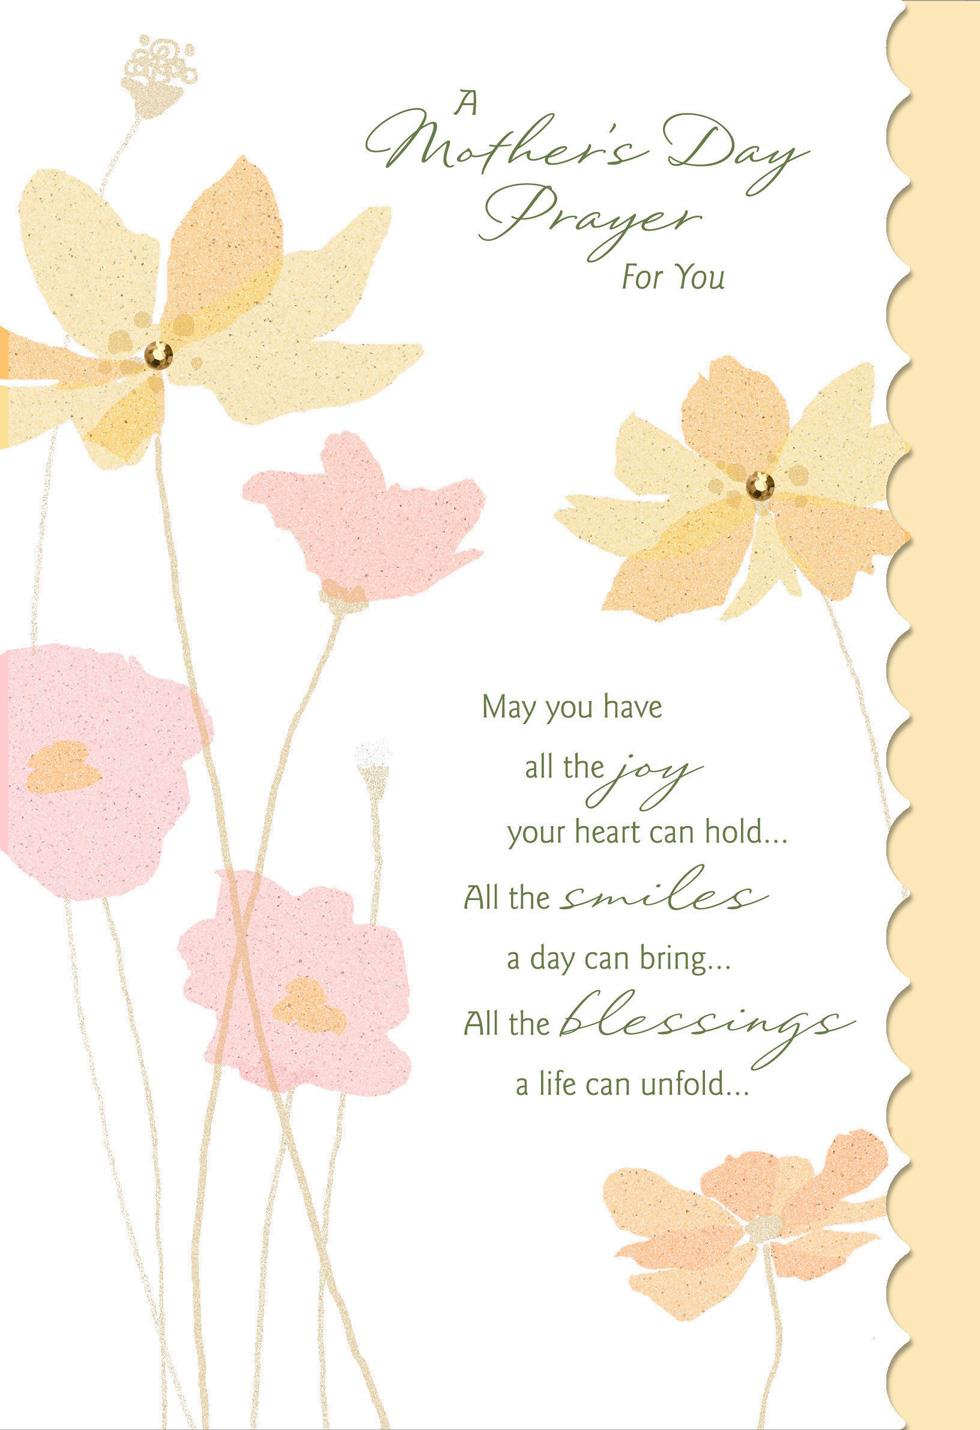 A Prayer For You Religious Mothers Day Card Greeting